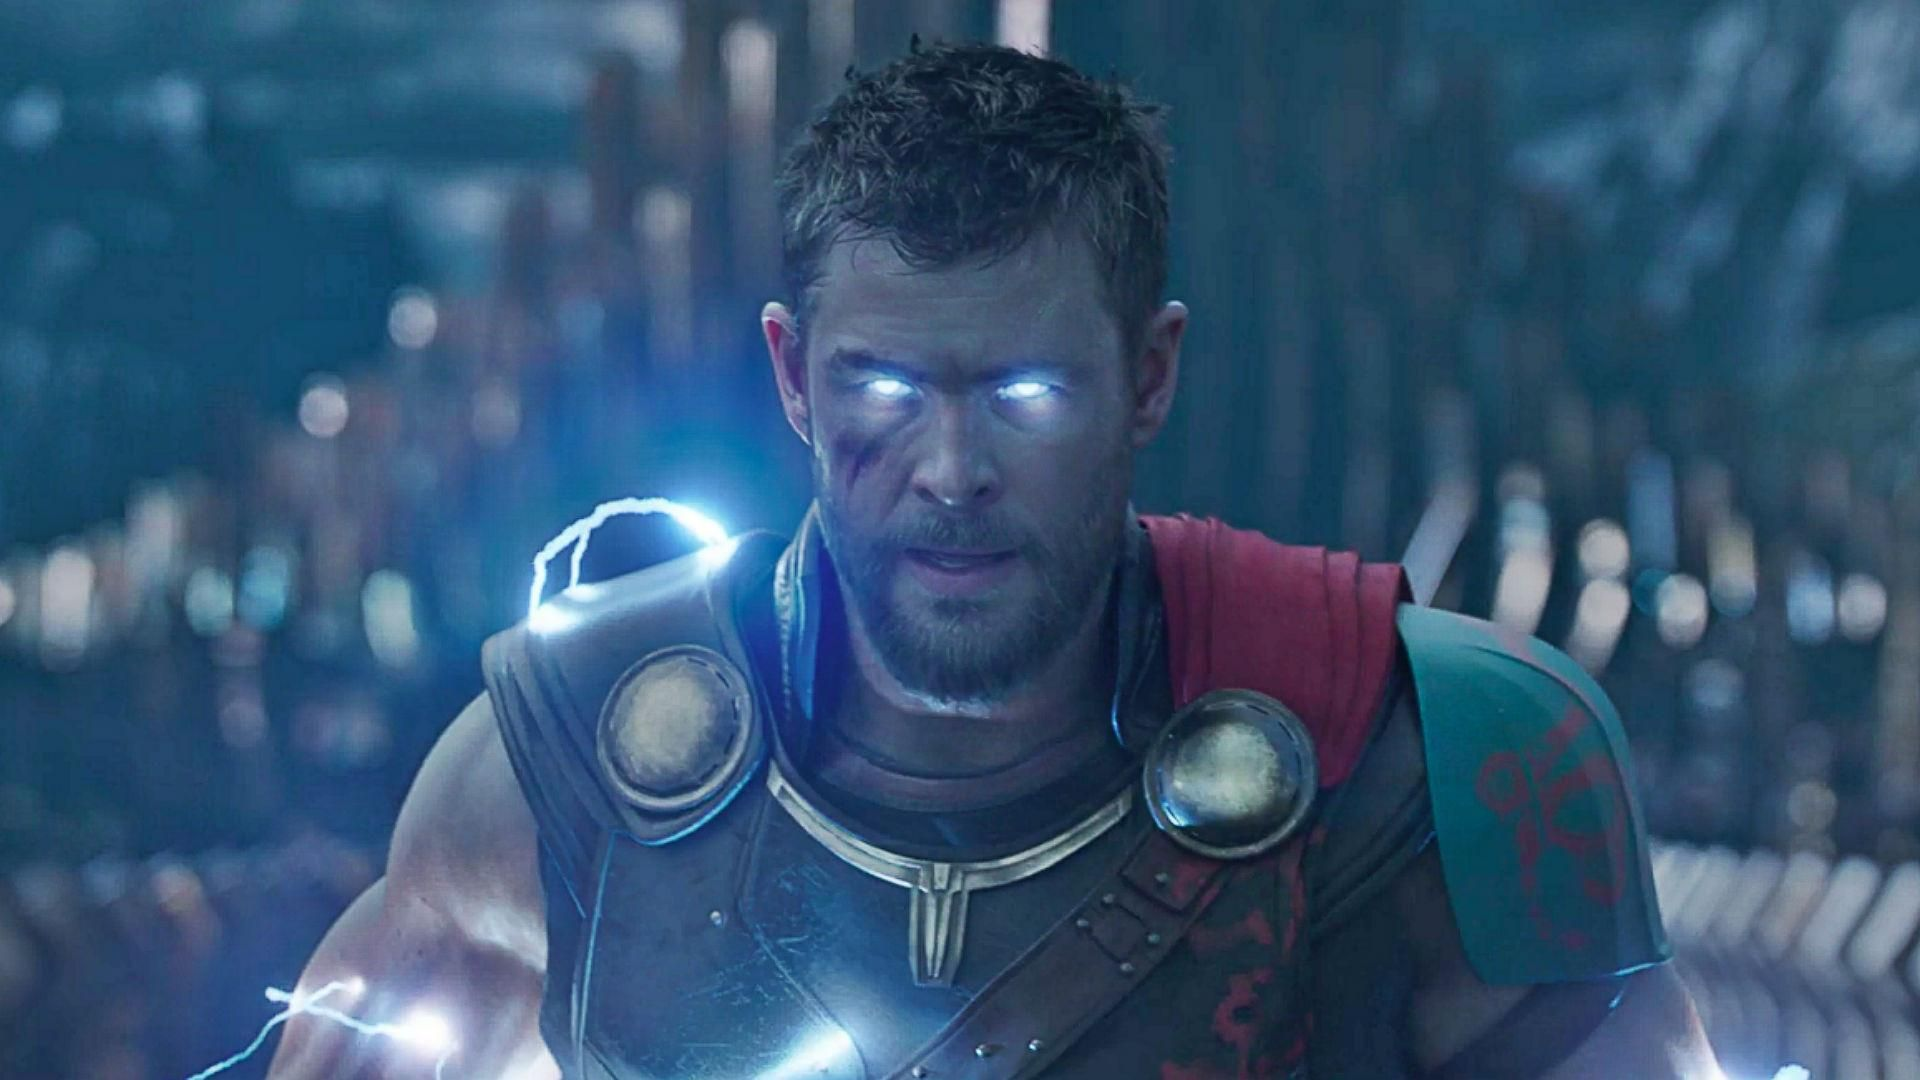 Chris Hemsworth Drops Very Subtle Hint That He May Not Be Done